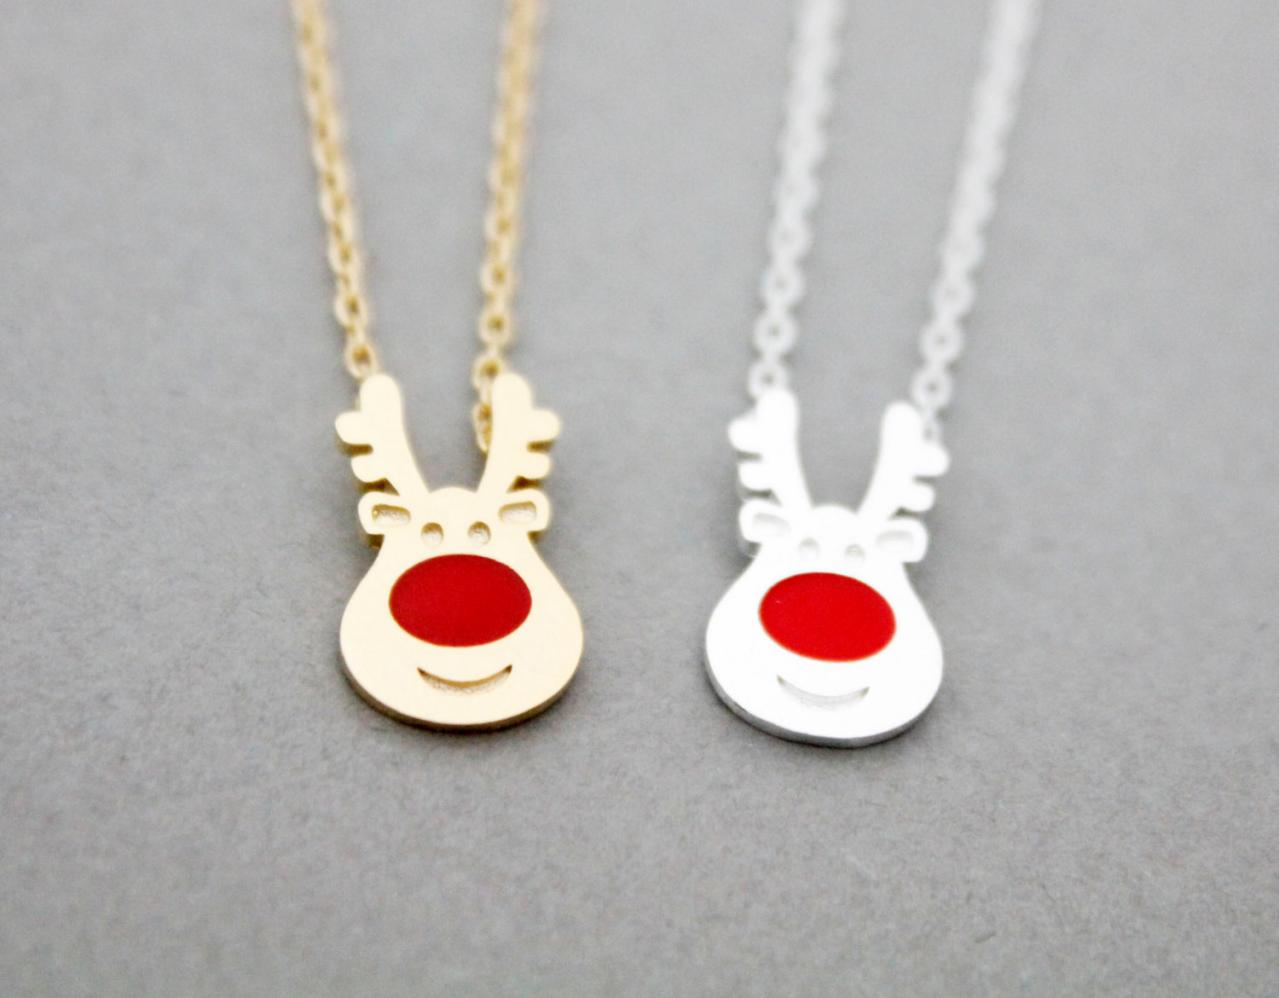 Rudolph the Red Nose Reindeer pendant necklace